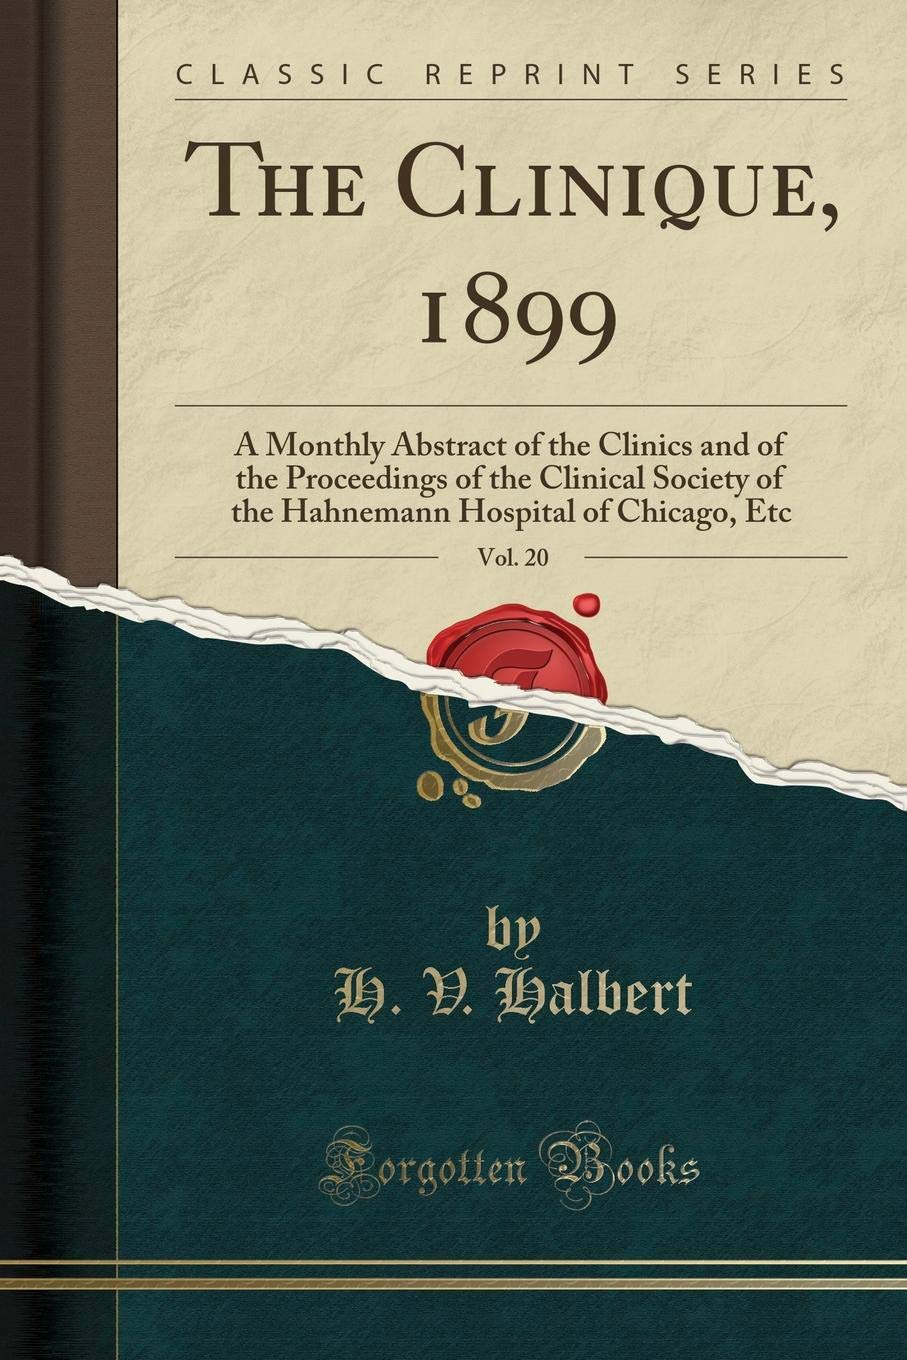 The Clinique, 1899, Vol. 20: A Monthly Abstract of the Clinics and of the Proceedings of the Clinical Society of the Hahnemann Hospital of Chicago, Etc (Classic Reprint) ebook